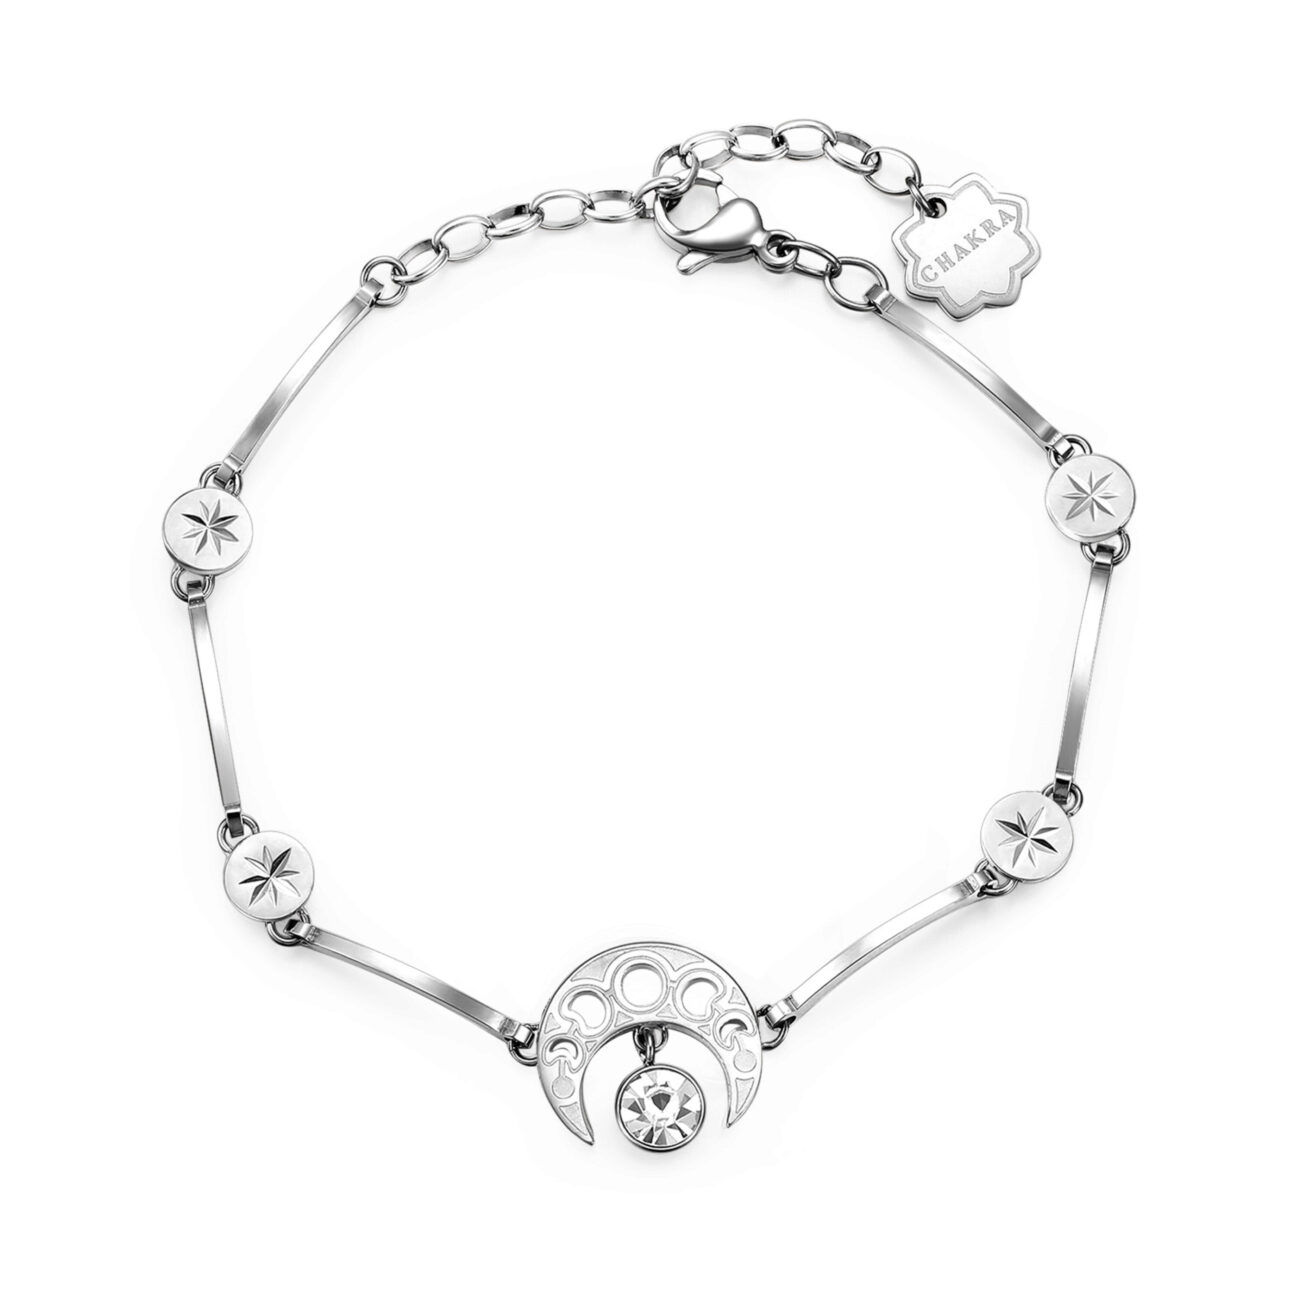 CRESCENT MOON: GROWTH, CHOICE, POSITIVITYThe waxing crescent moon presents the perfect opportunity to try new things, set new goals, tackle new challenges and make important life choices. It is a symbol of energy and one that exudes a sense of well-being and positivity.316L stainless steel bracelet with crystals.